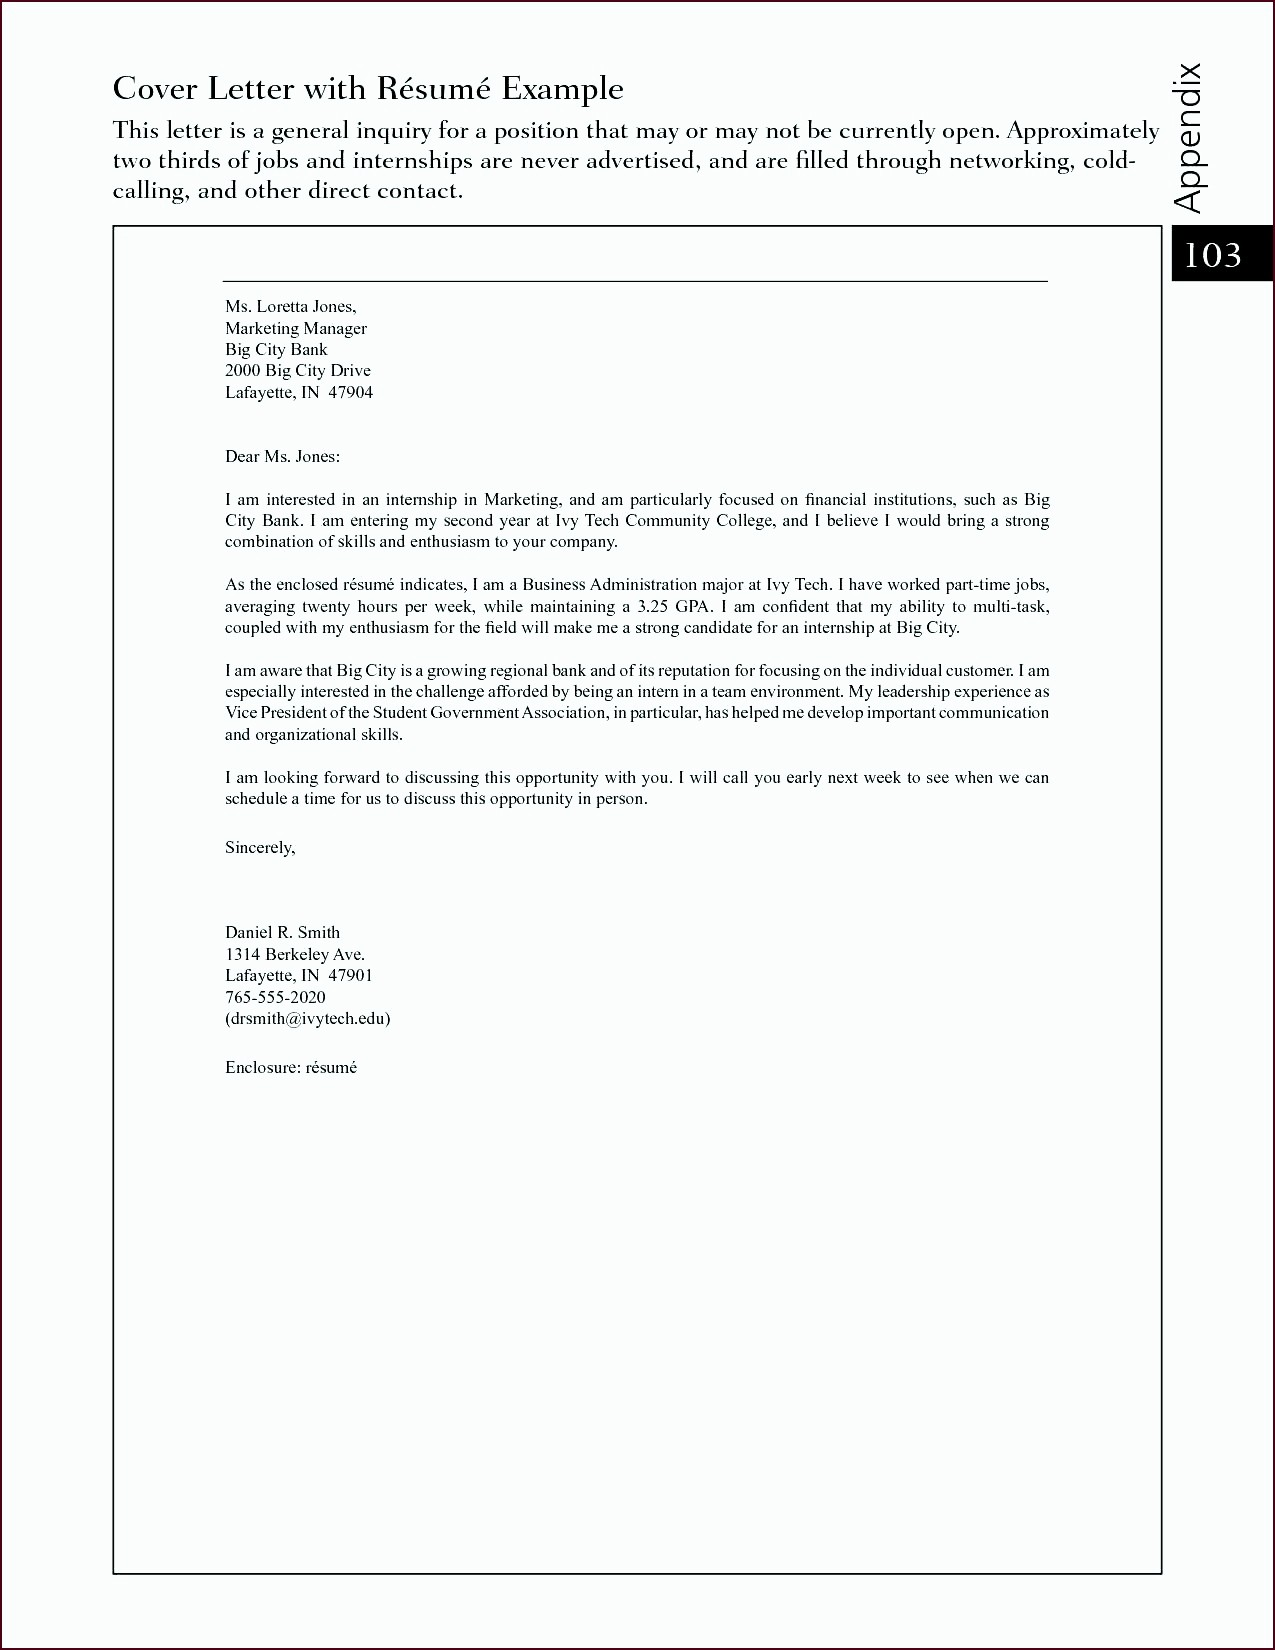 Free Ms Word Letter Templates Fresh 8 Free Cover Letter Template Microsoft Word Template